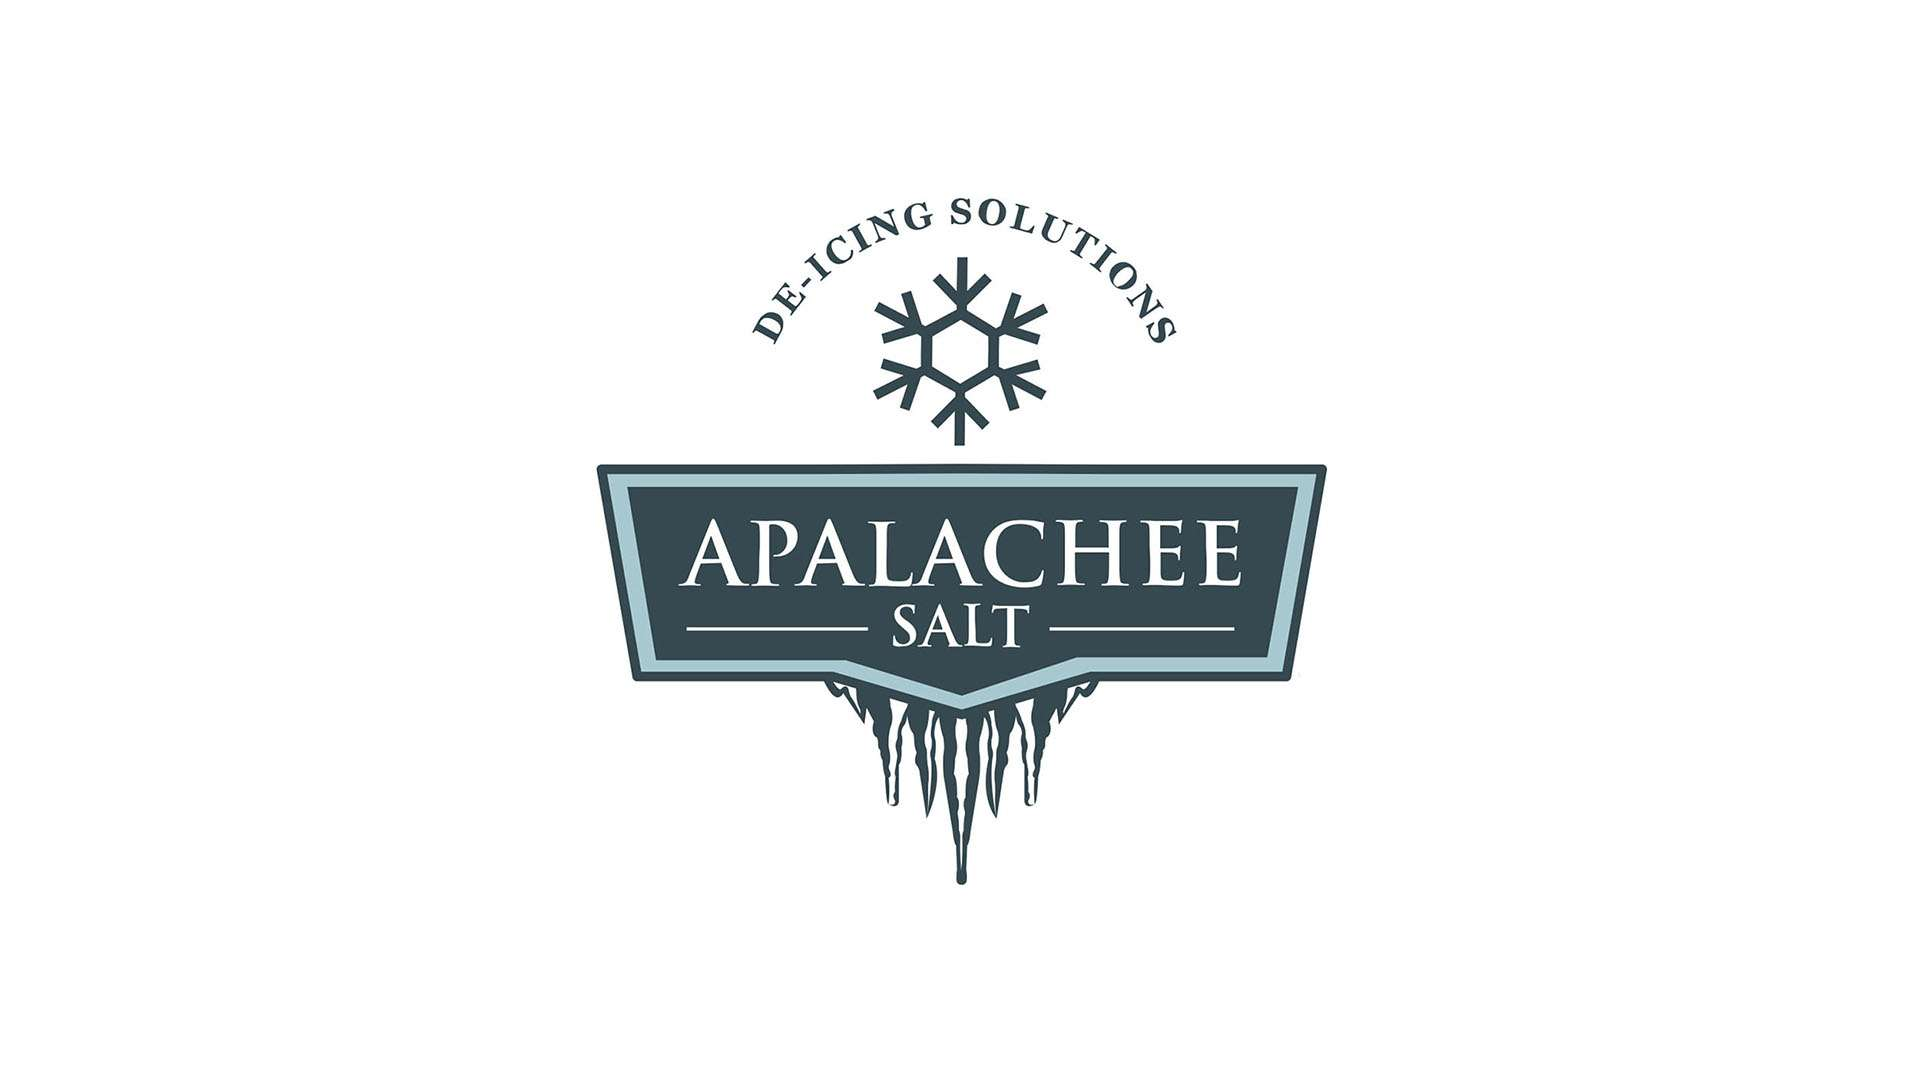 Melting ice logo design for Apalachee Salt using serif font and green colors.